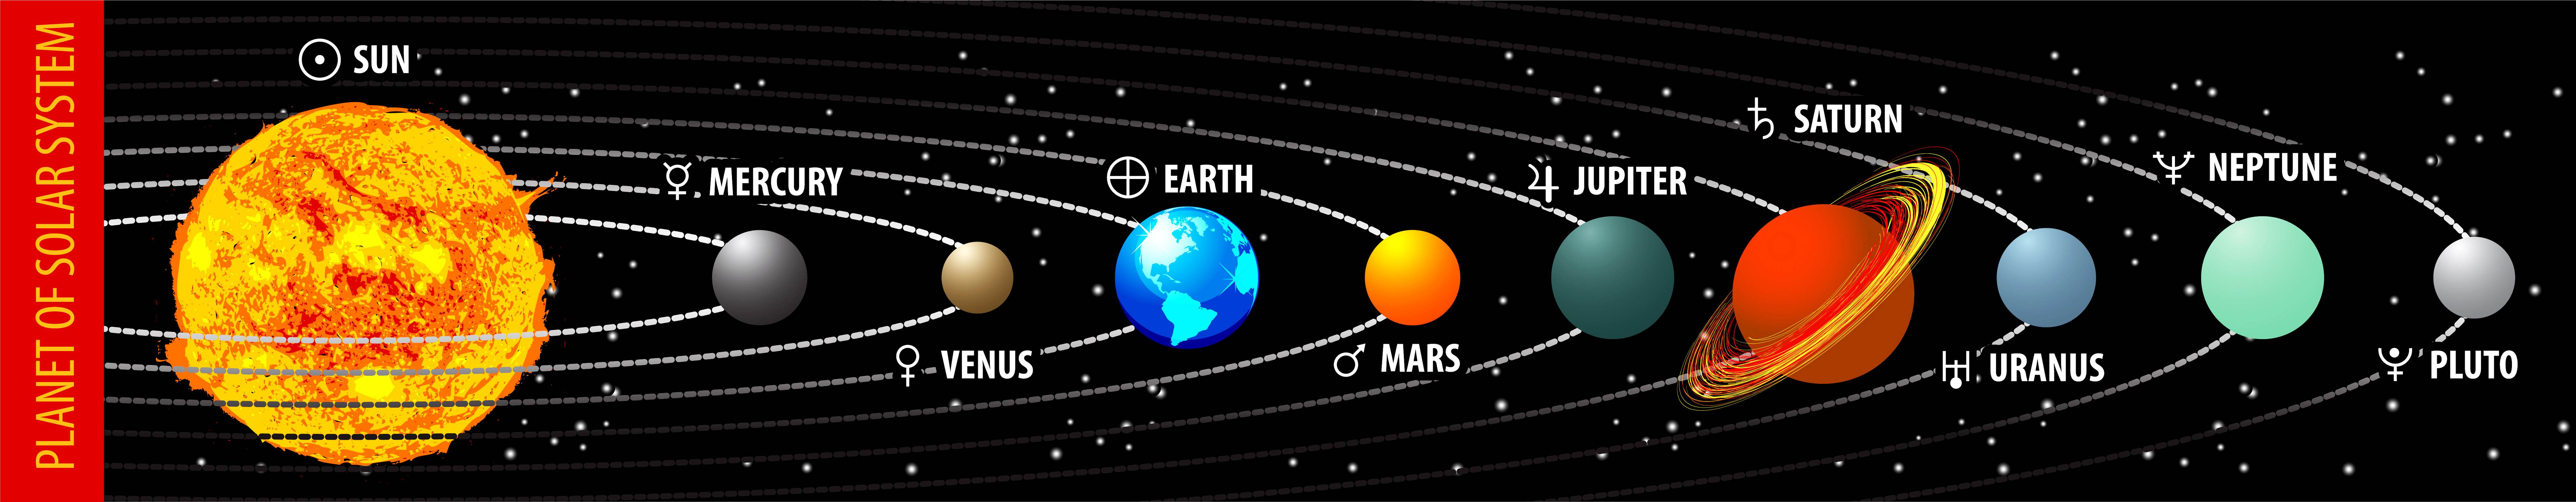 Planets Of The Solar System With Astronomical Signs